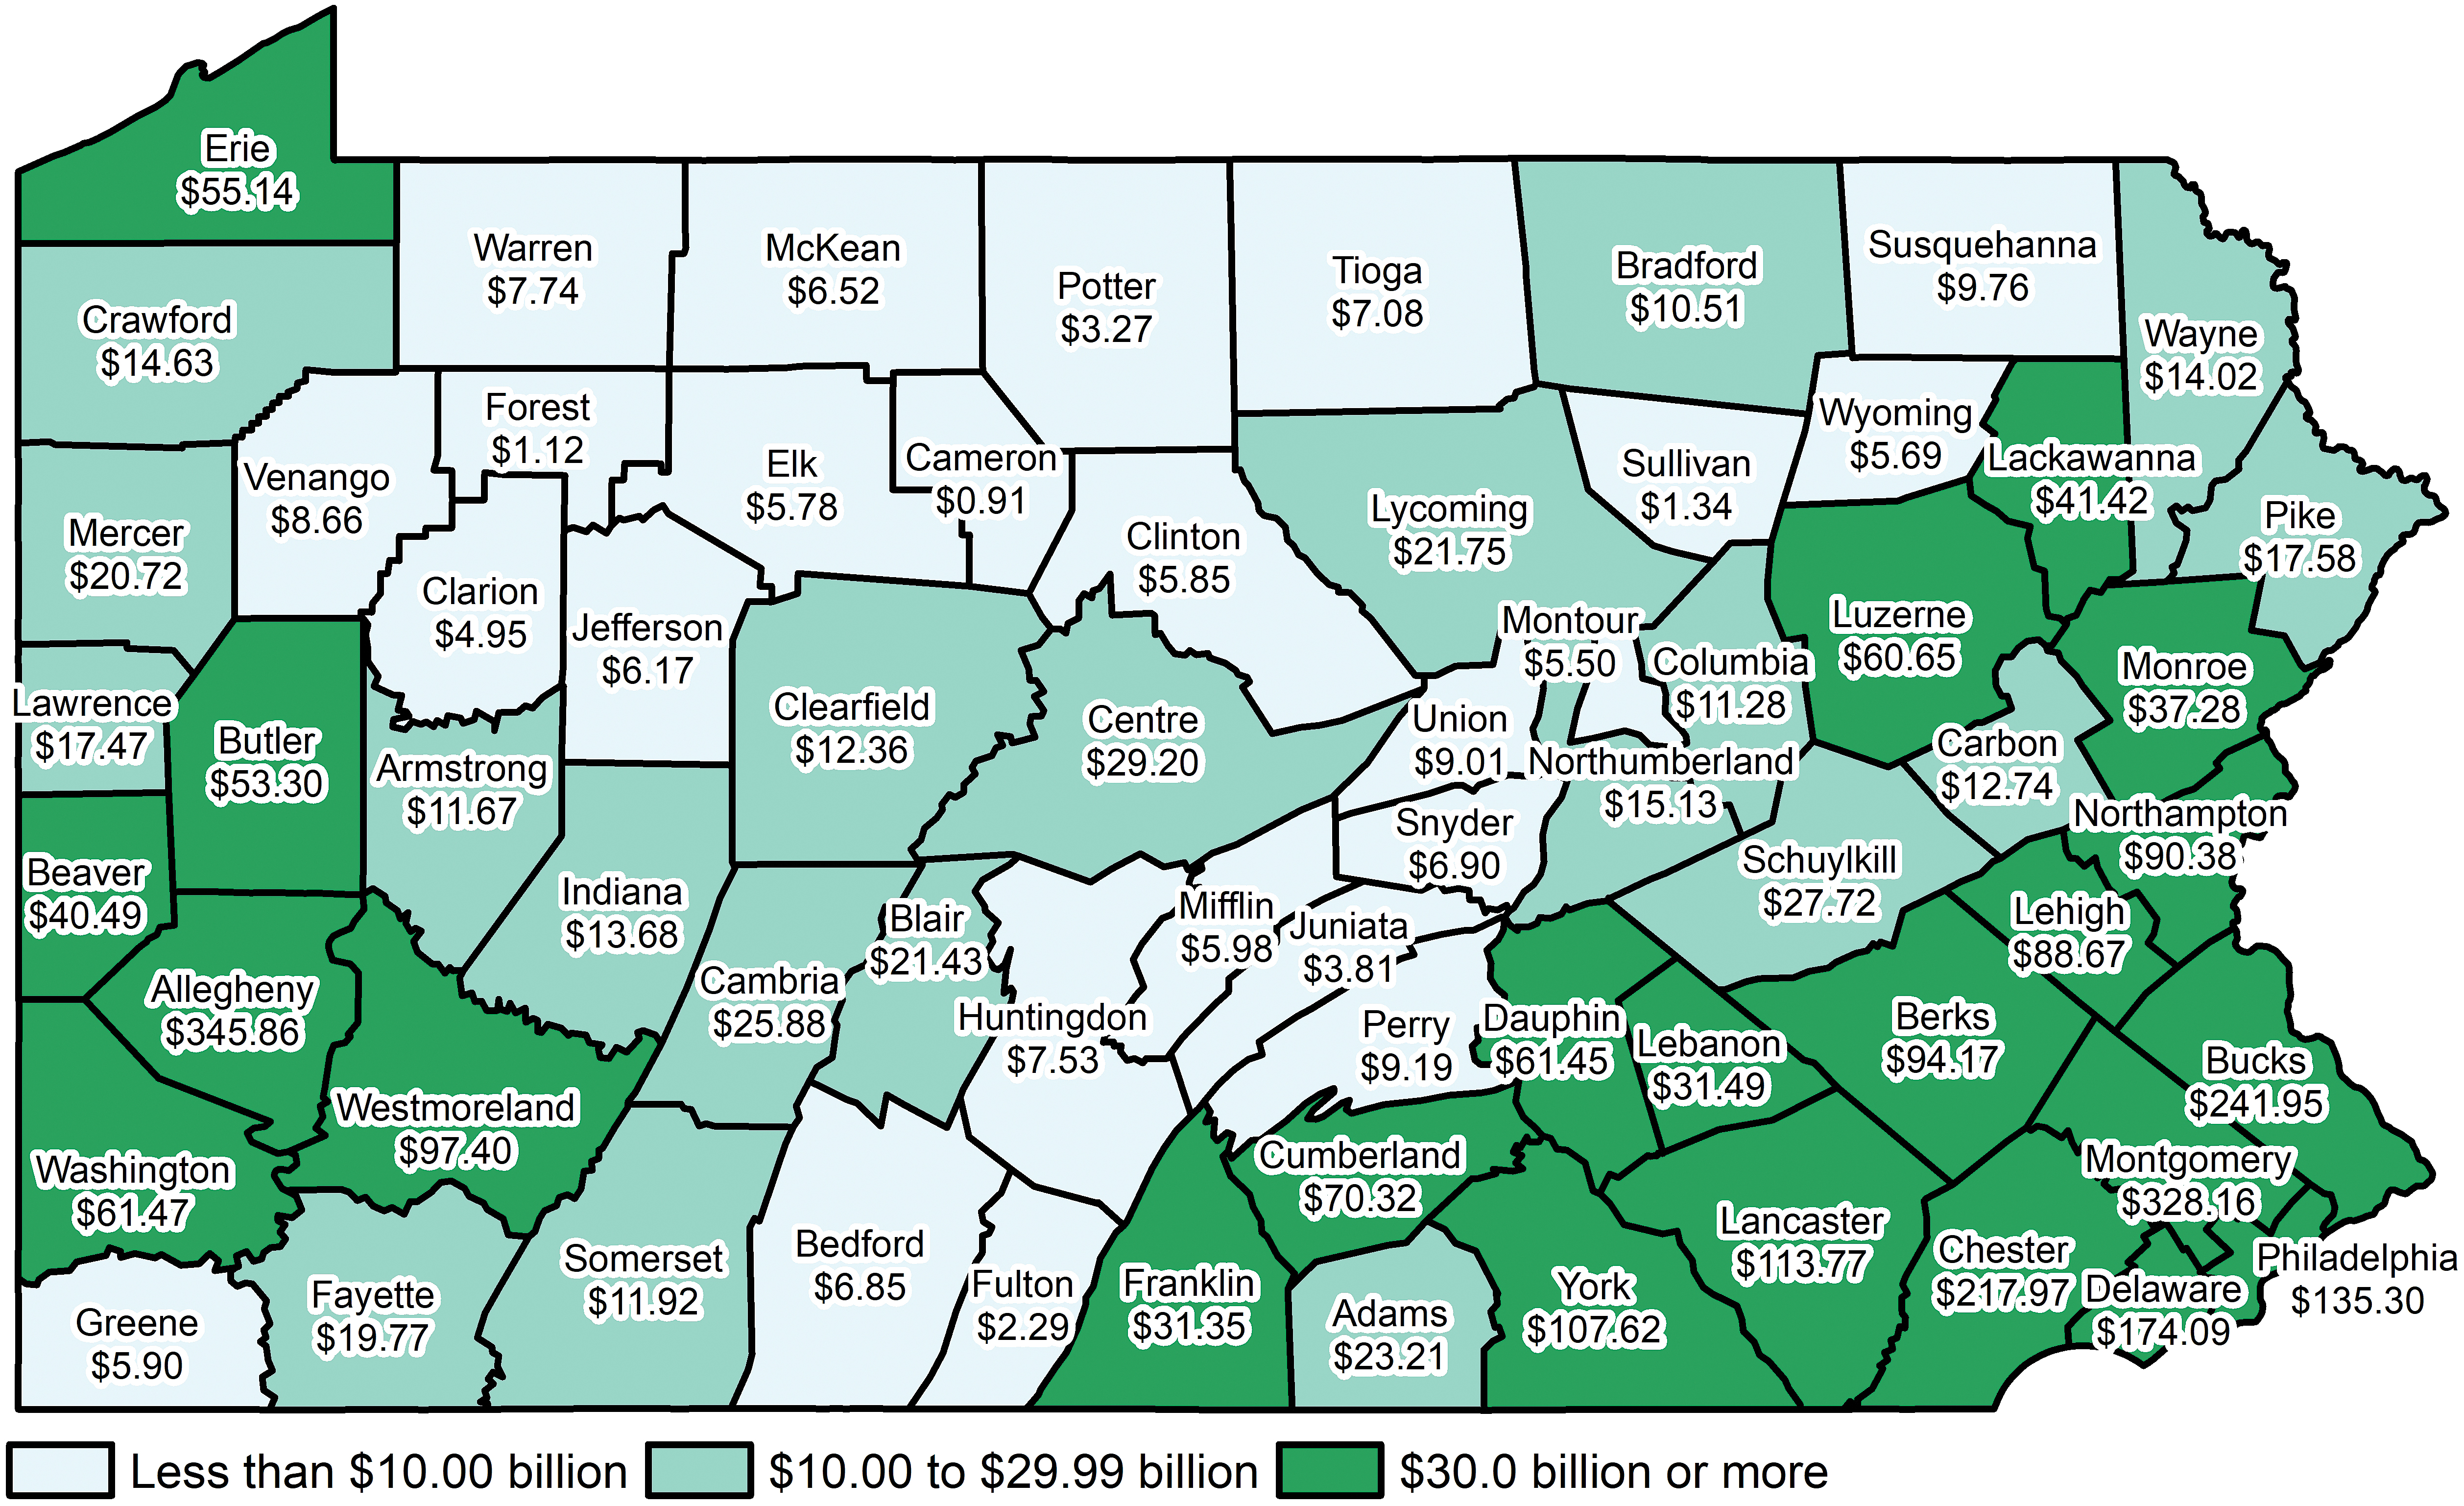 The estimated current net worth (in billions) of Pennsylvania residents in 2015